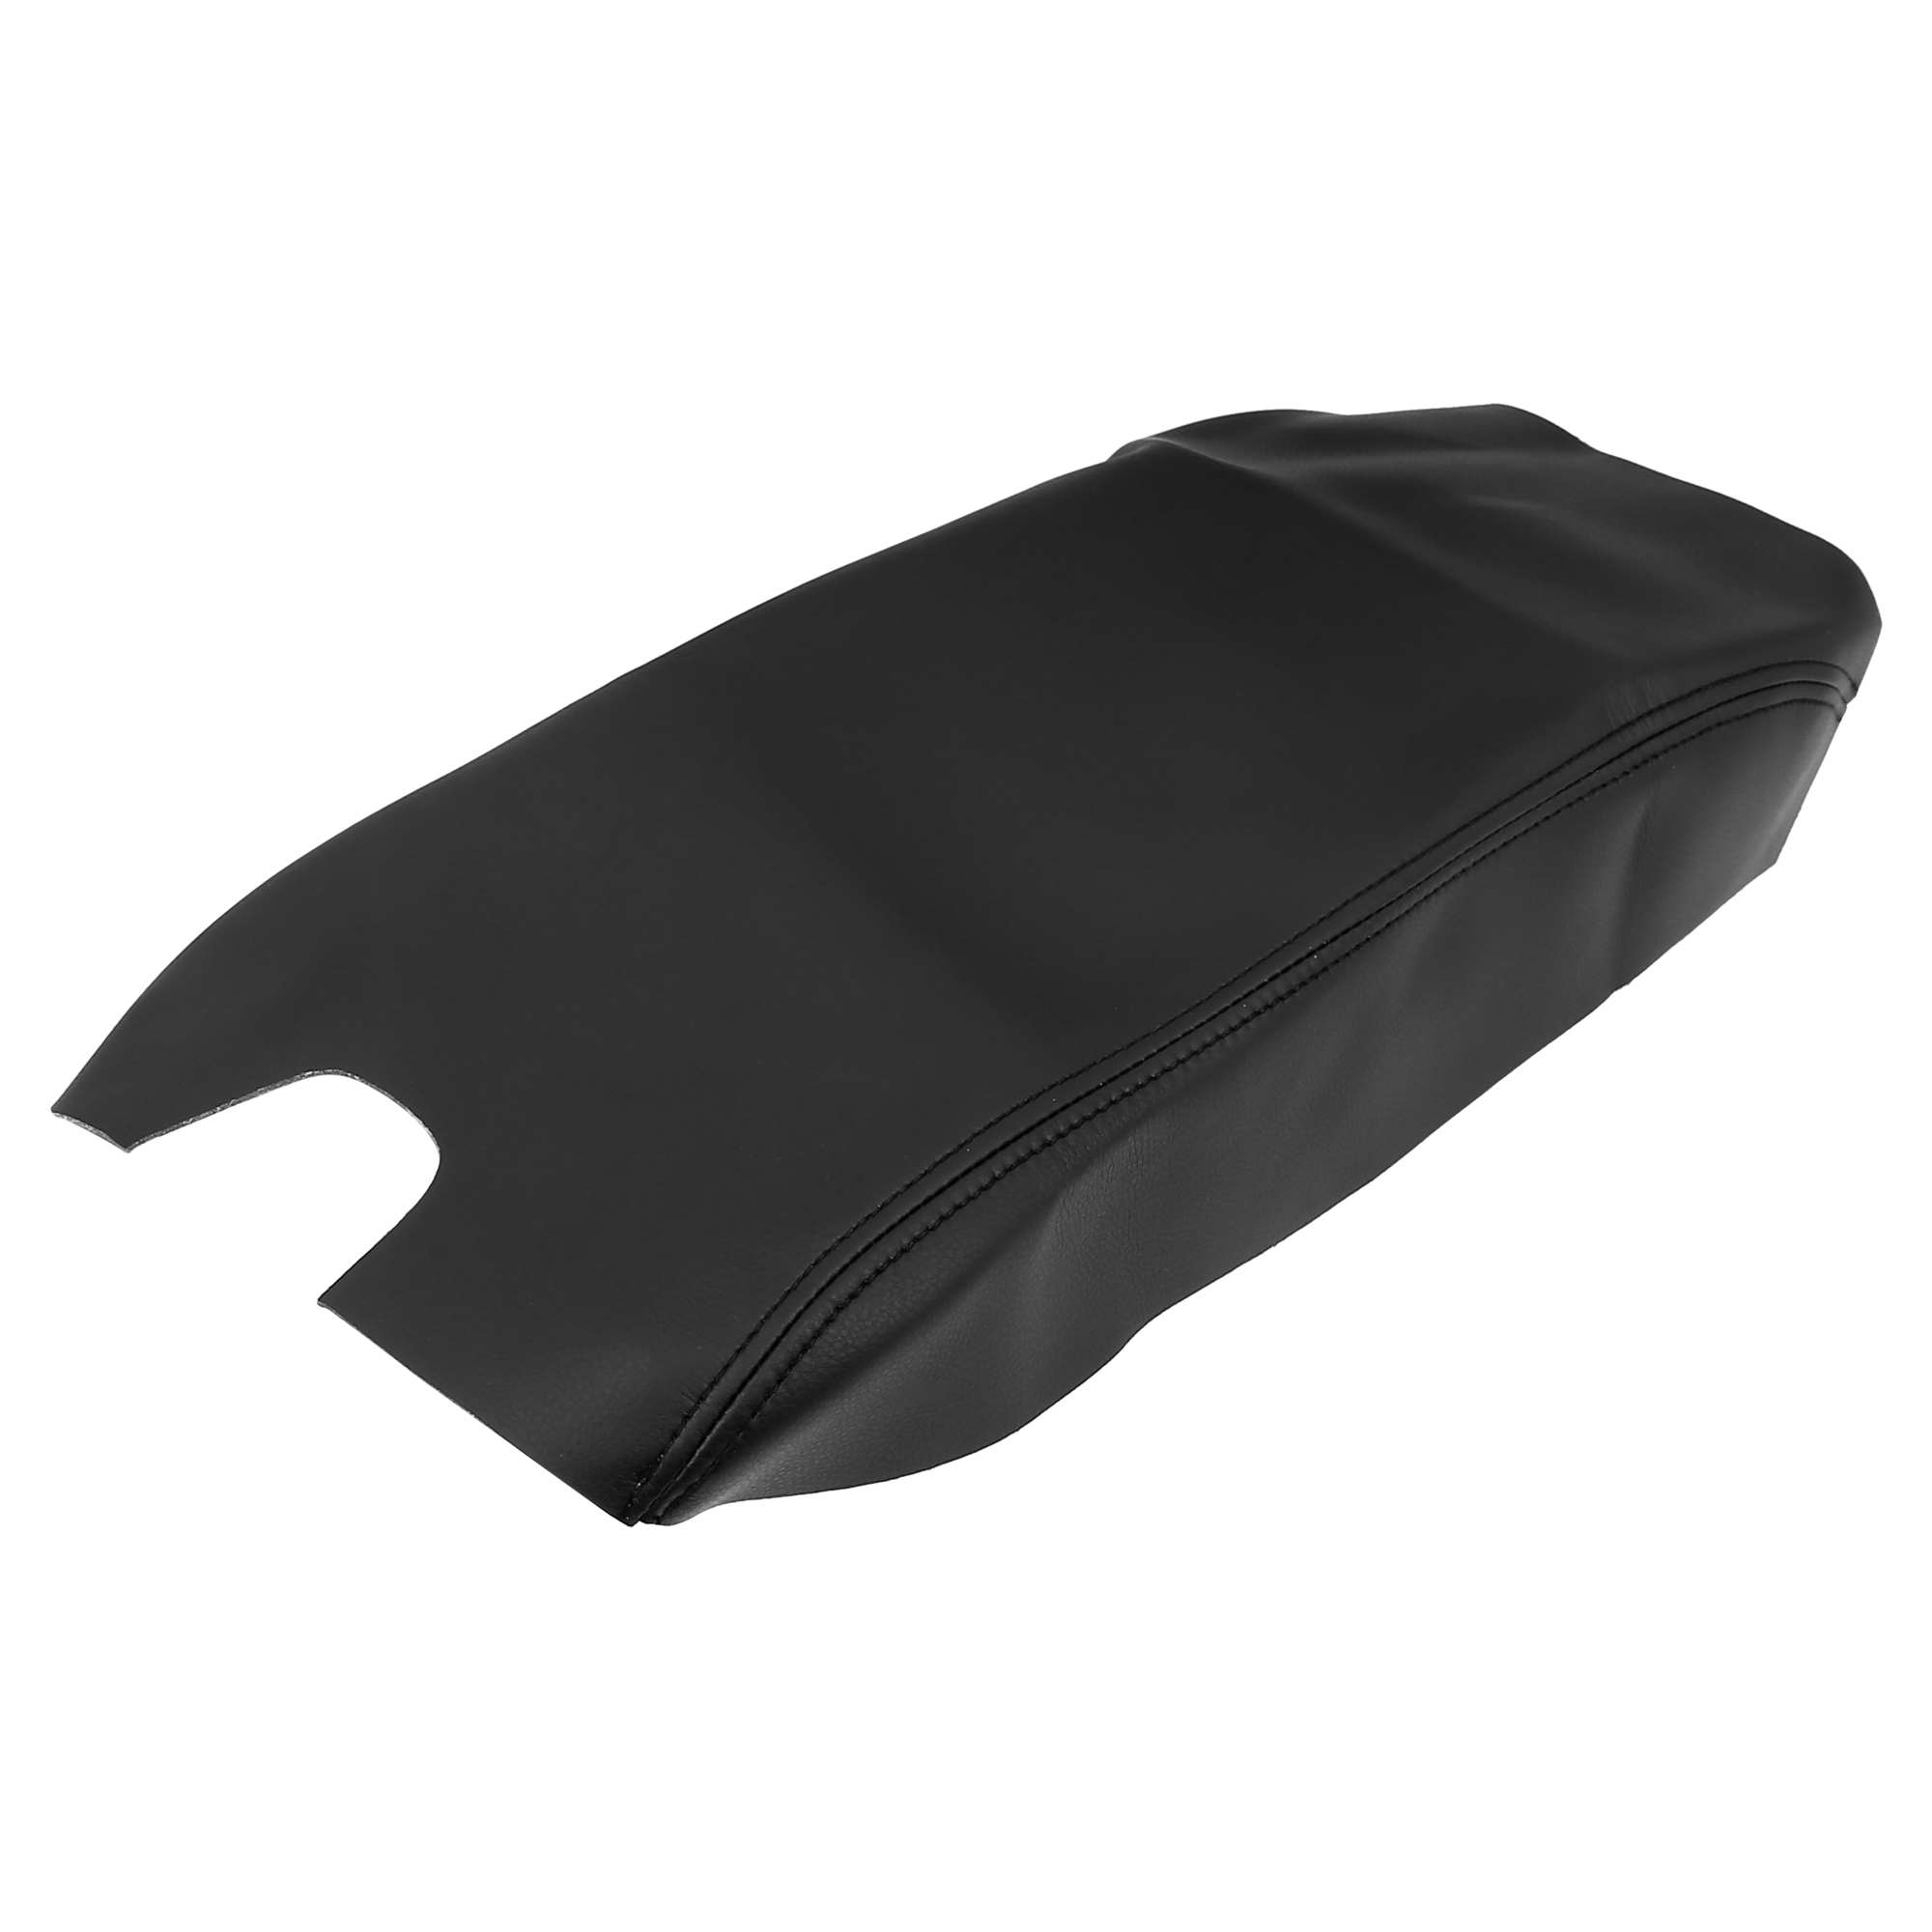 Car Center Console Lid Armrest Pad Cover Black for Ford F150 2009-2014